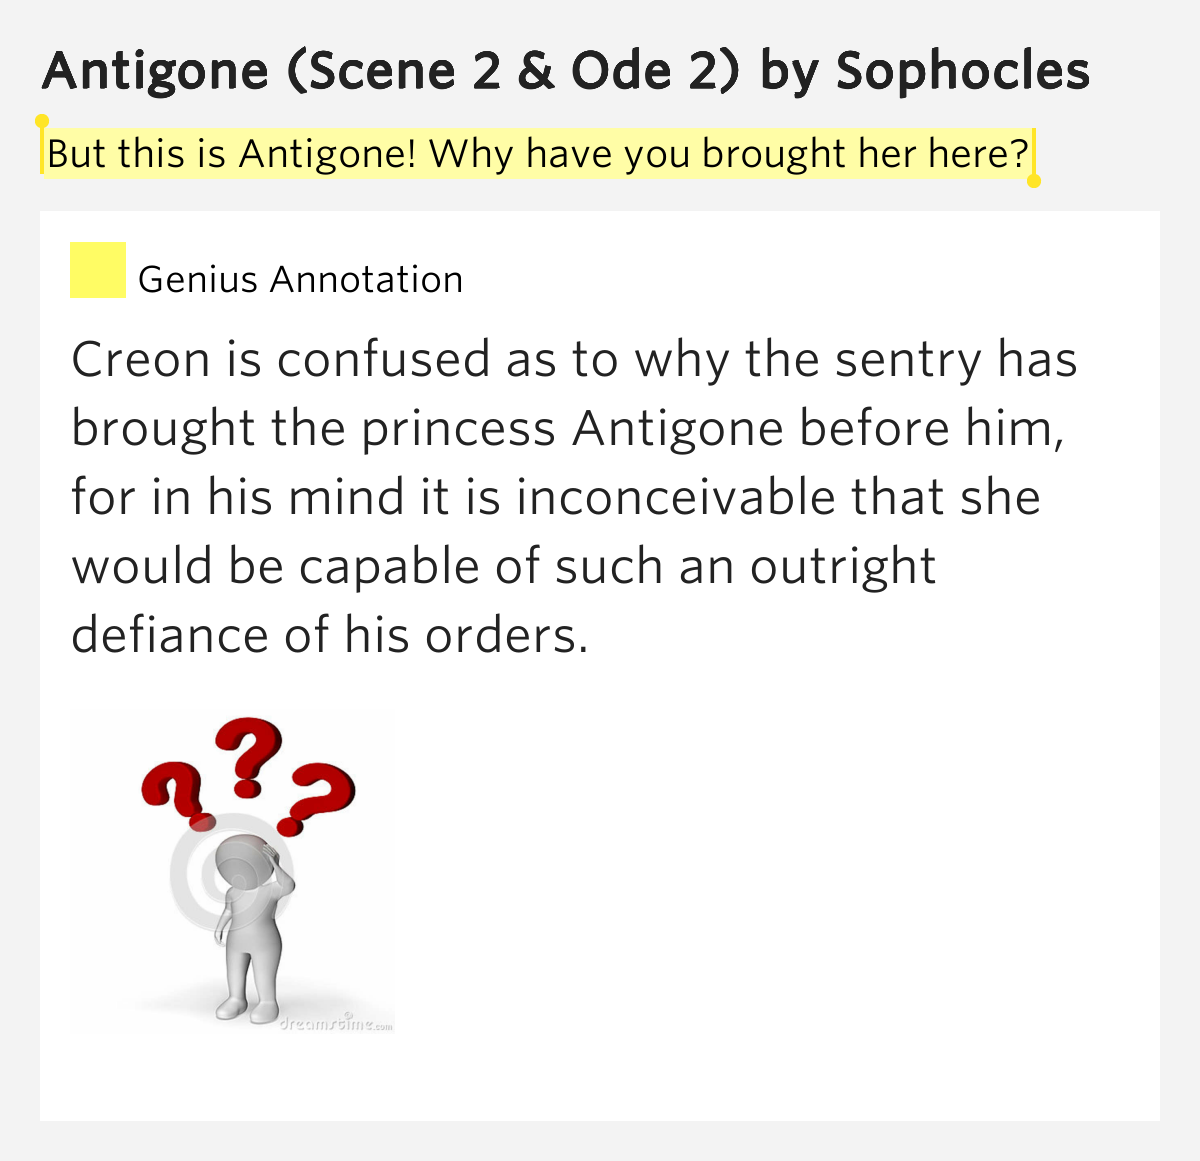 a comparison of antigone and creon in antigone by sophocles Conflicting values in antigone in the play antigone by sophocles, creon and antigone have distinct conflicting values.